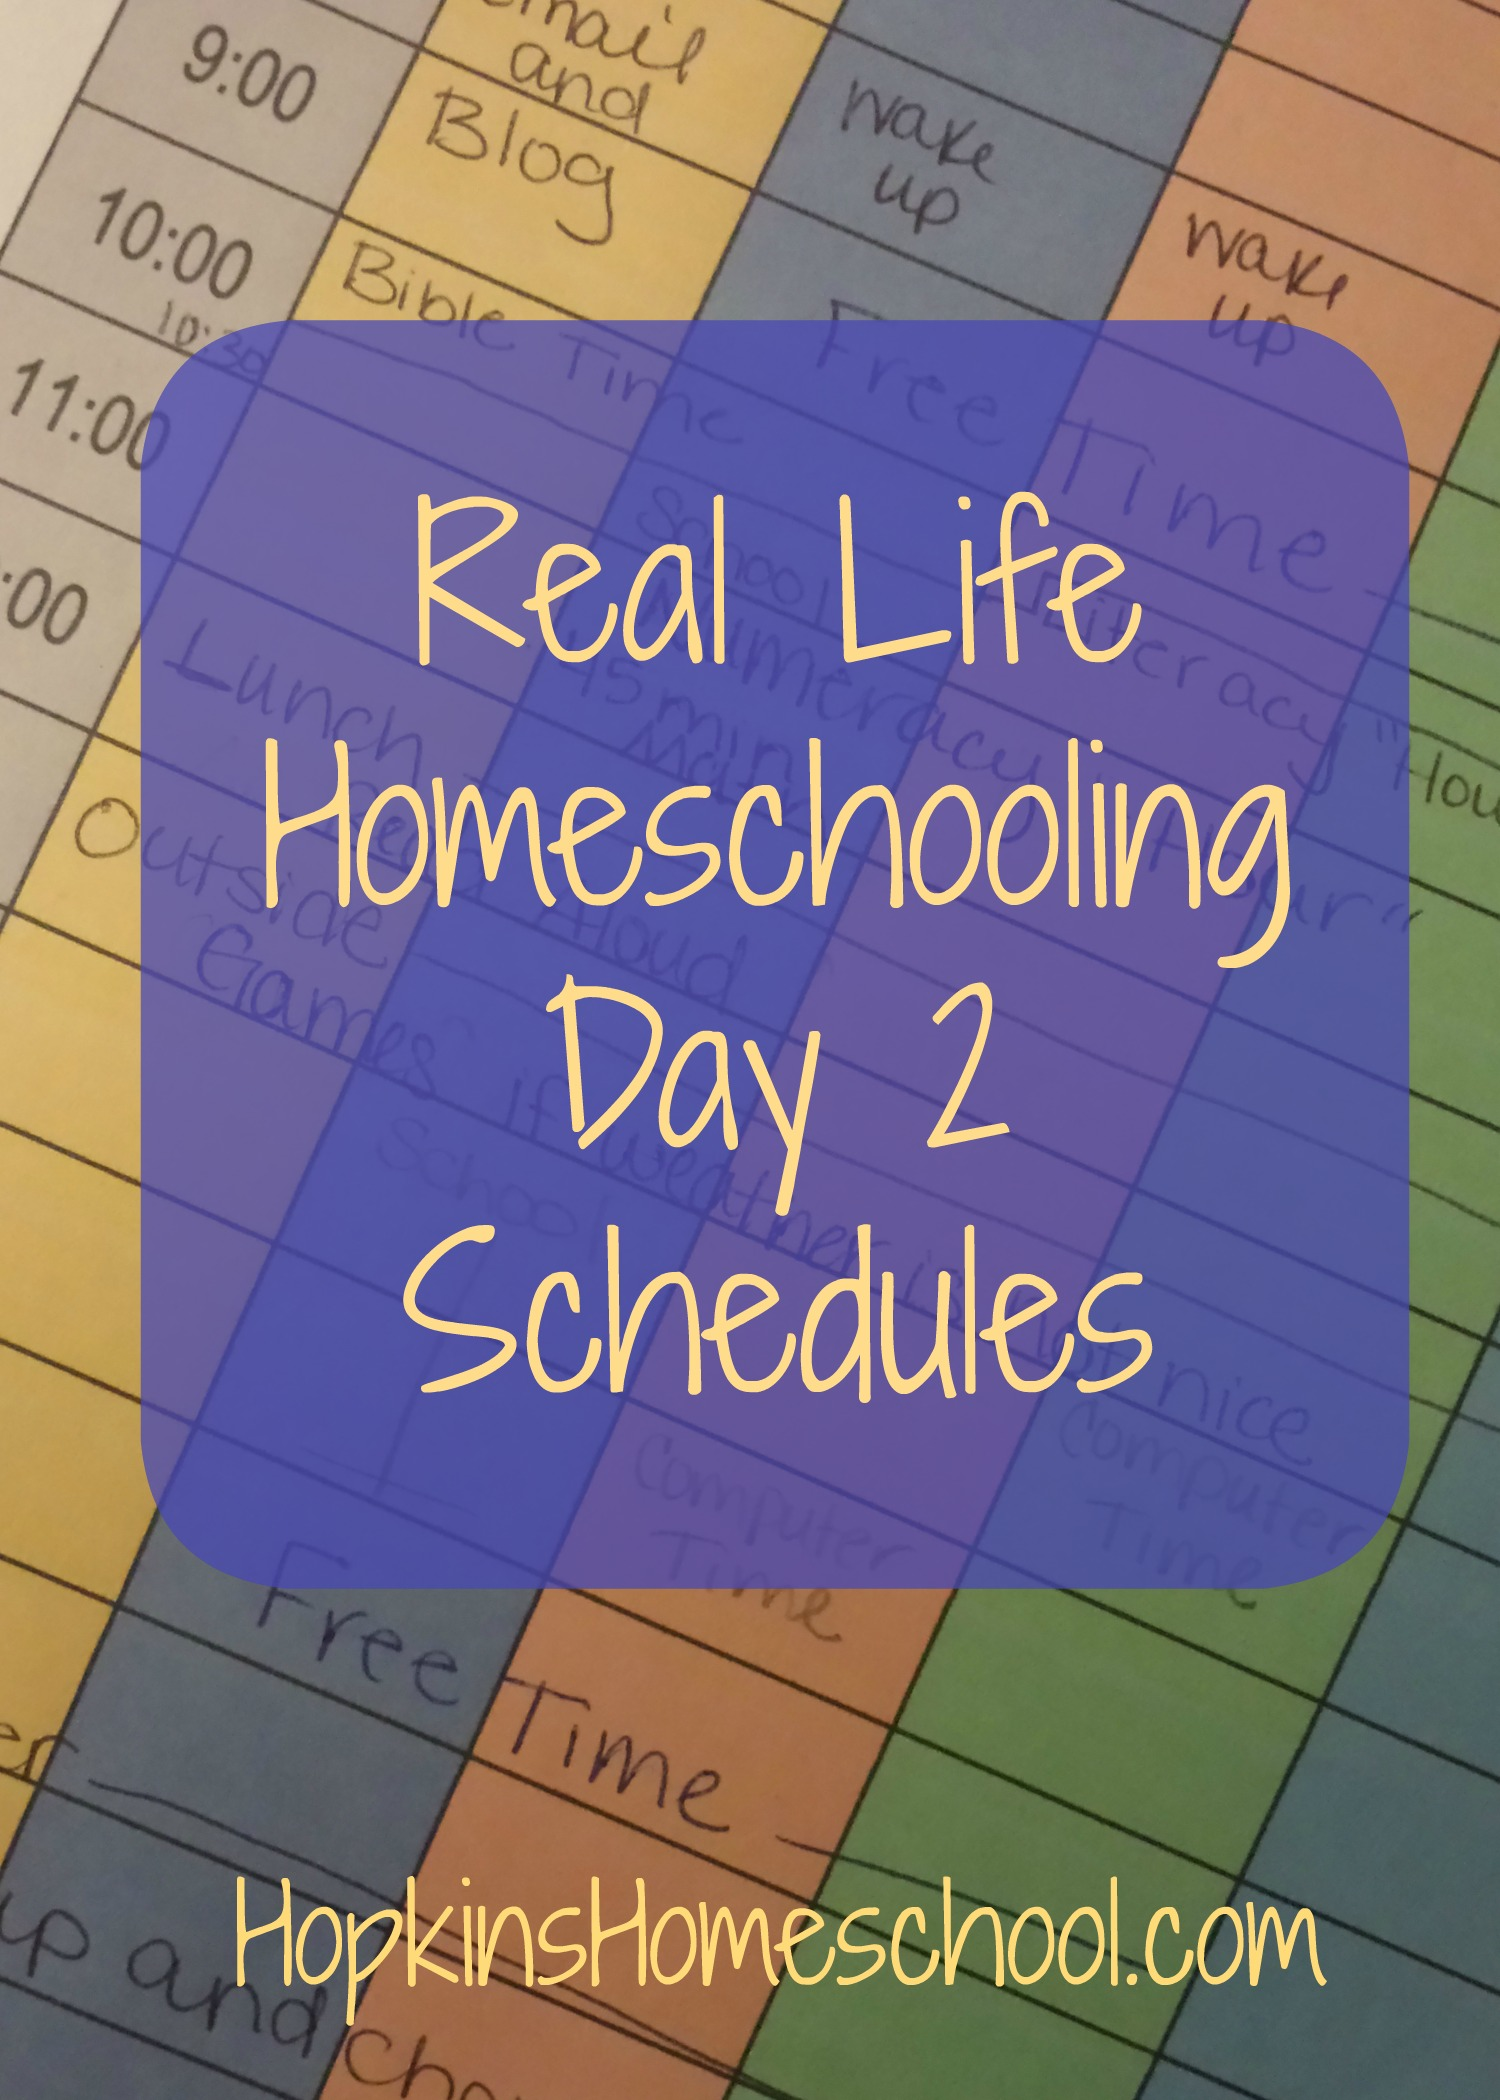 Real Life Homeschooling Schedules